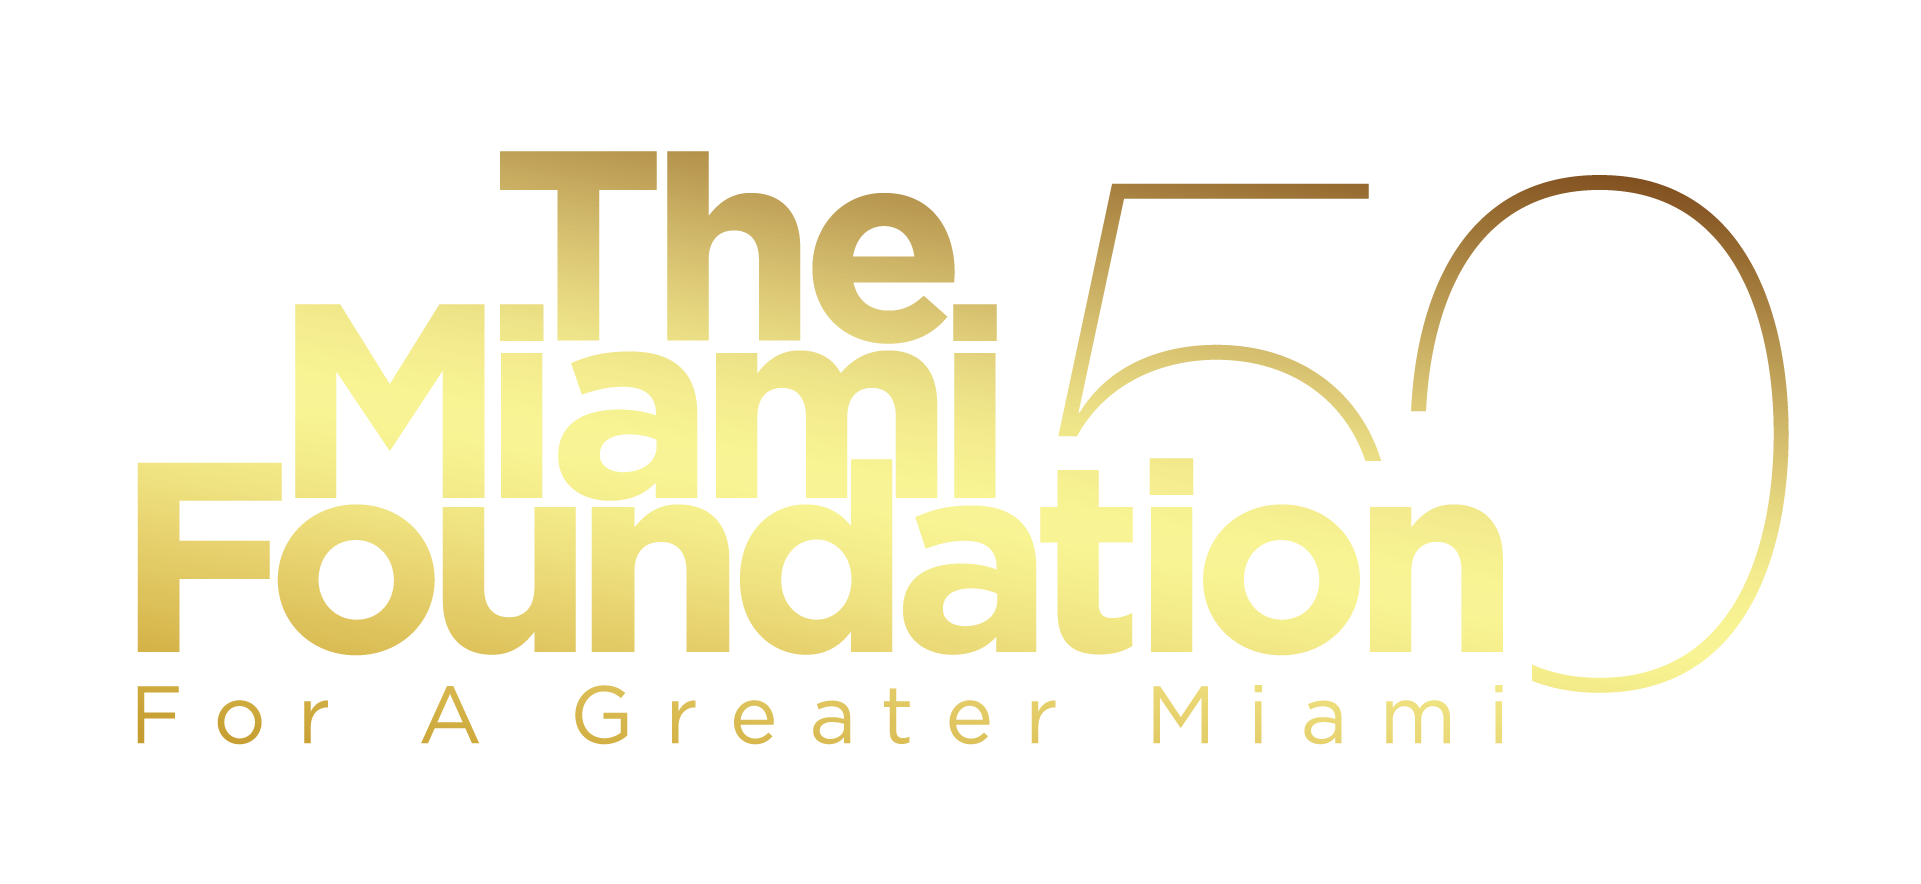 Give Miami Day November 17, 2016